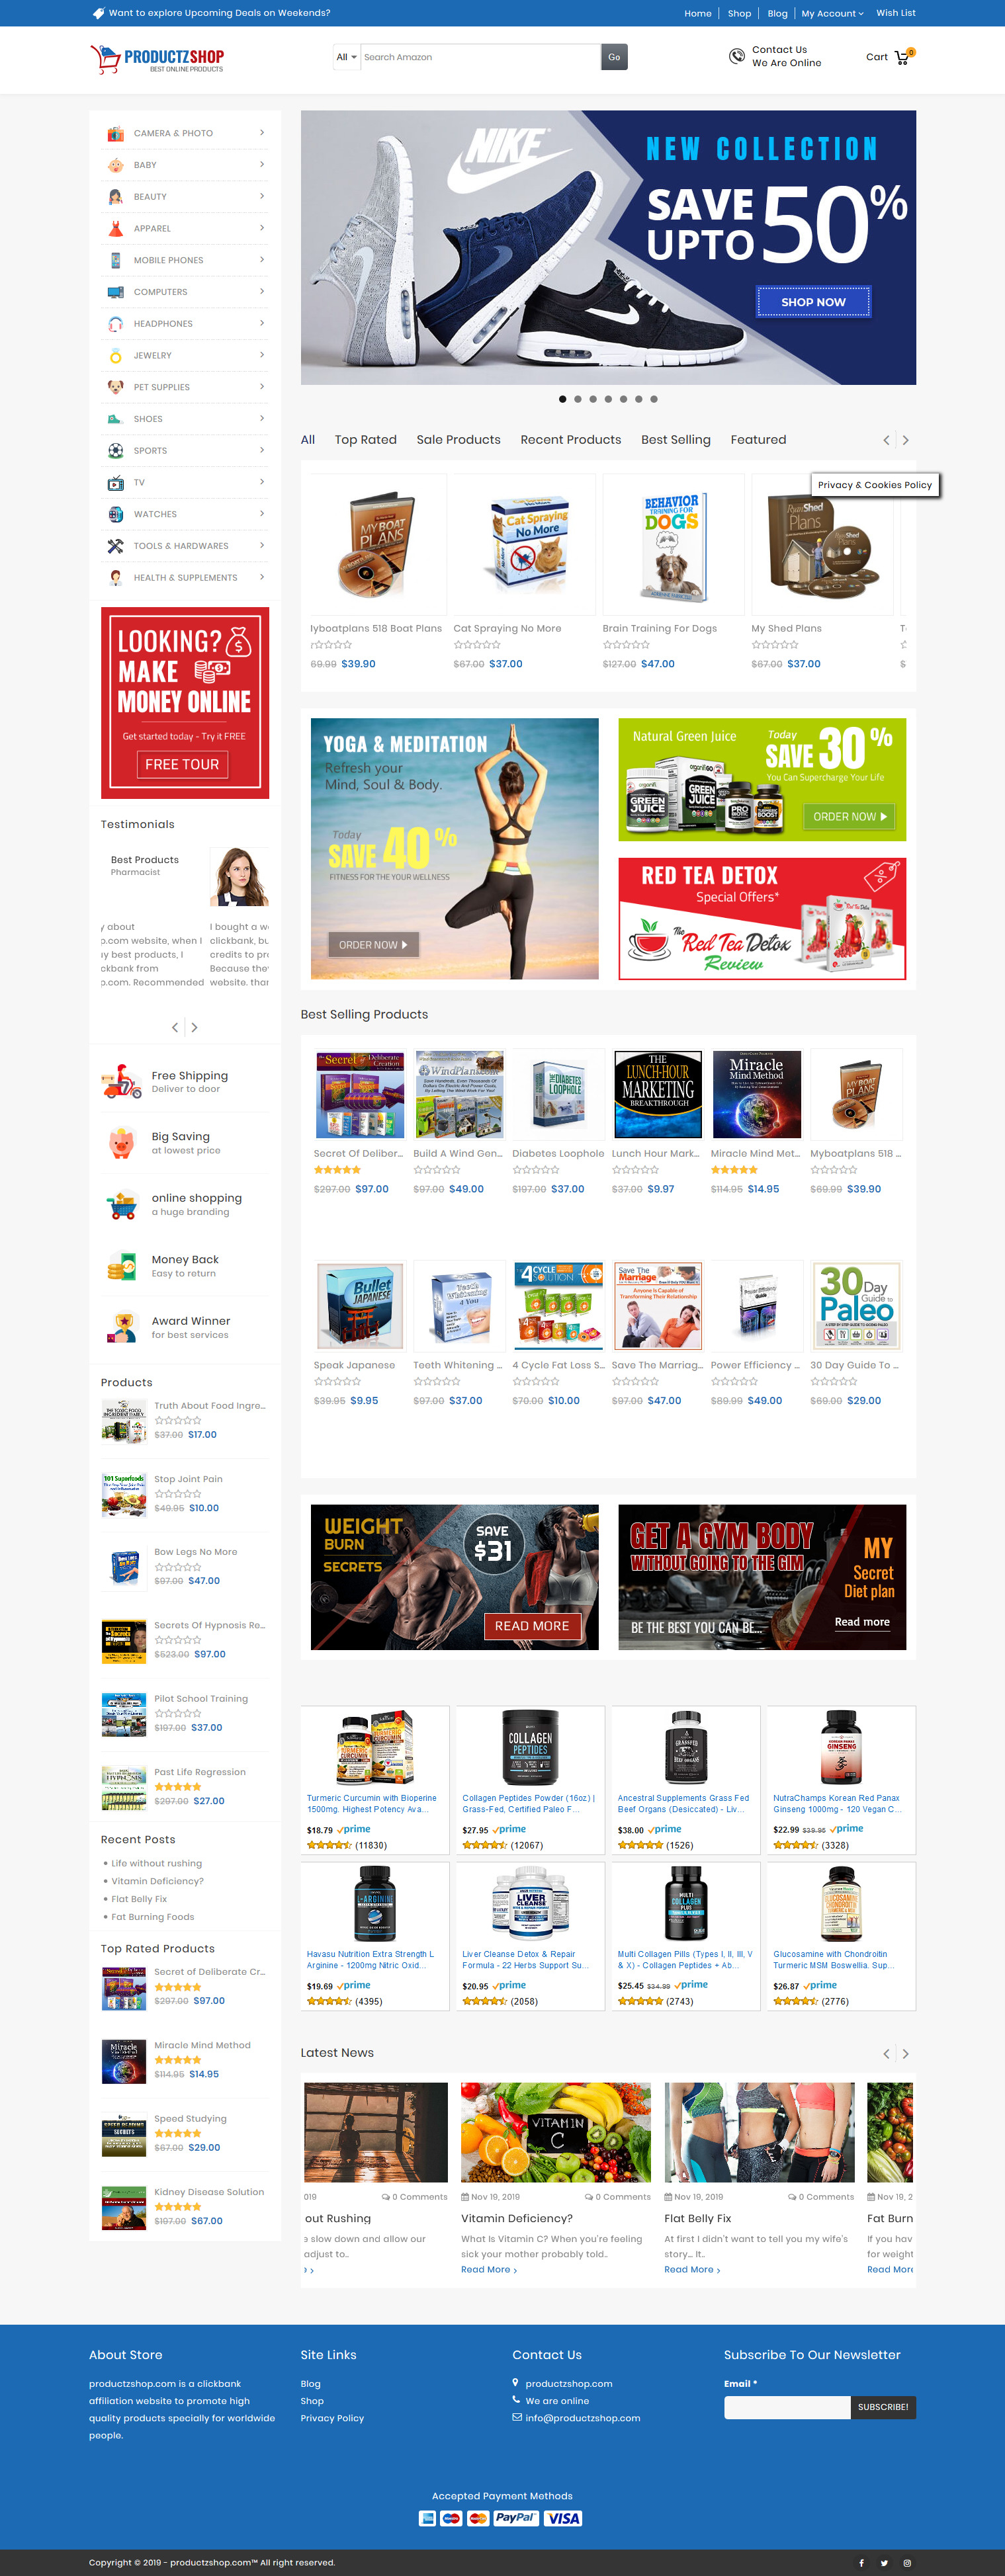 I will create an Amazon Shop Online Affiliate Business Website Free Marketing Plan